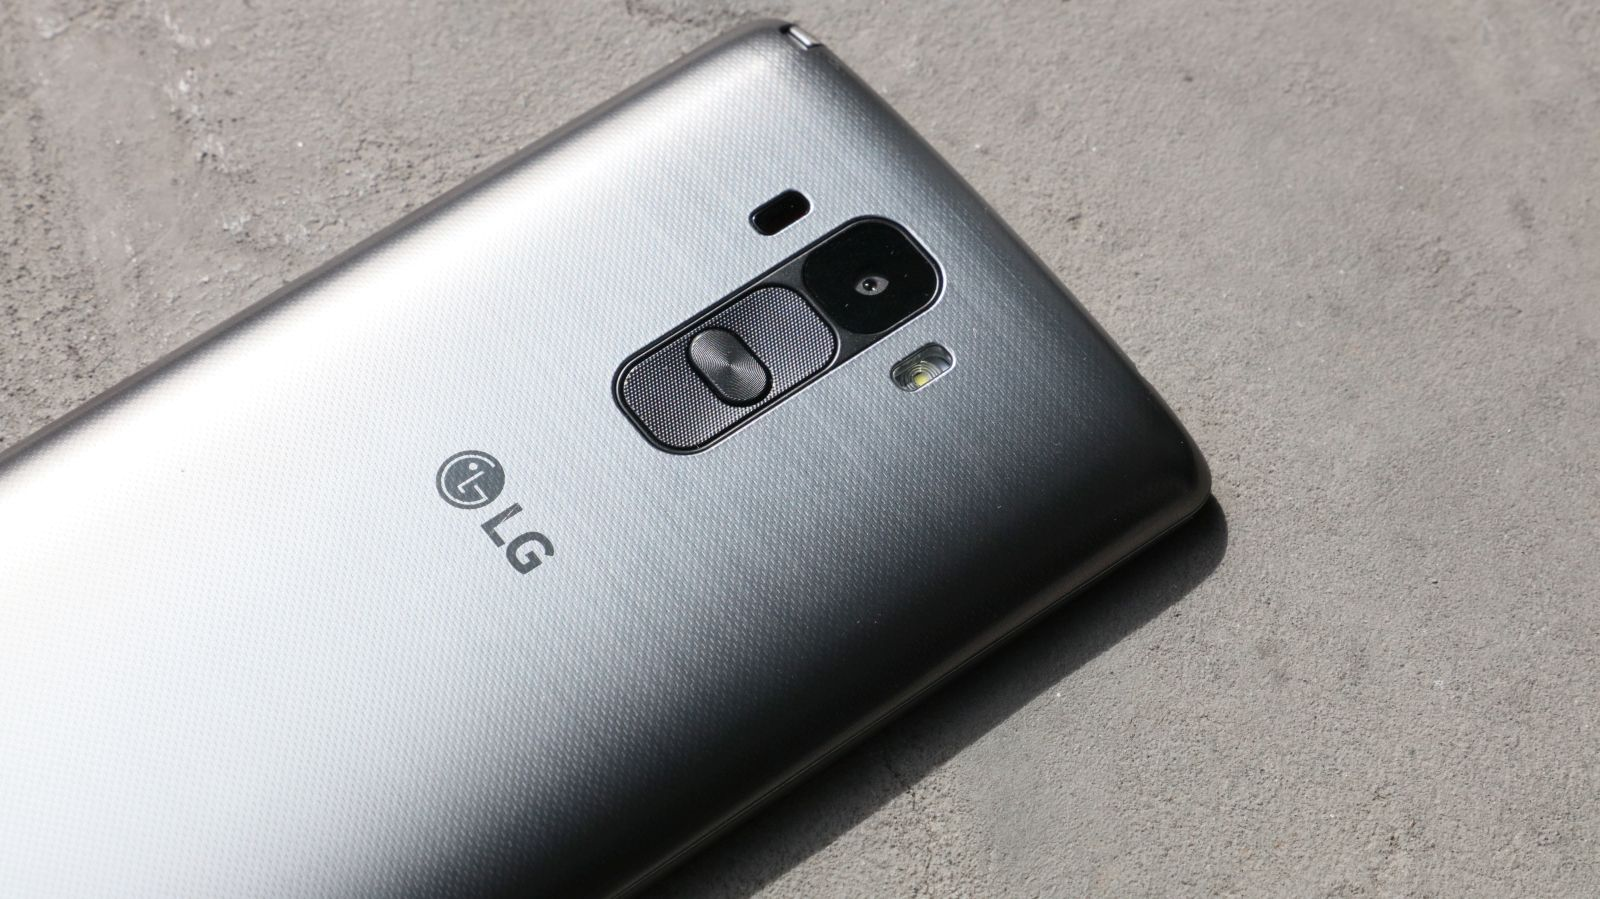 LG G4 Stylus review 5